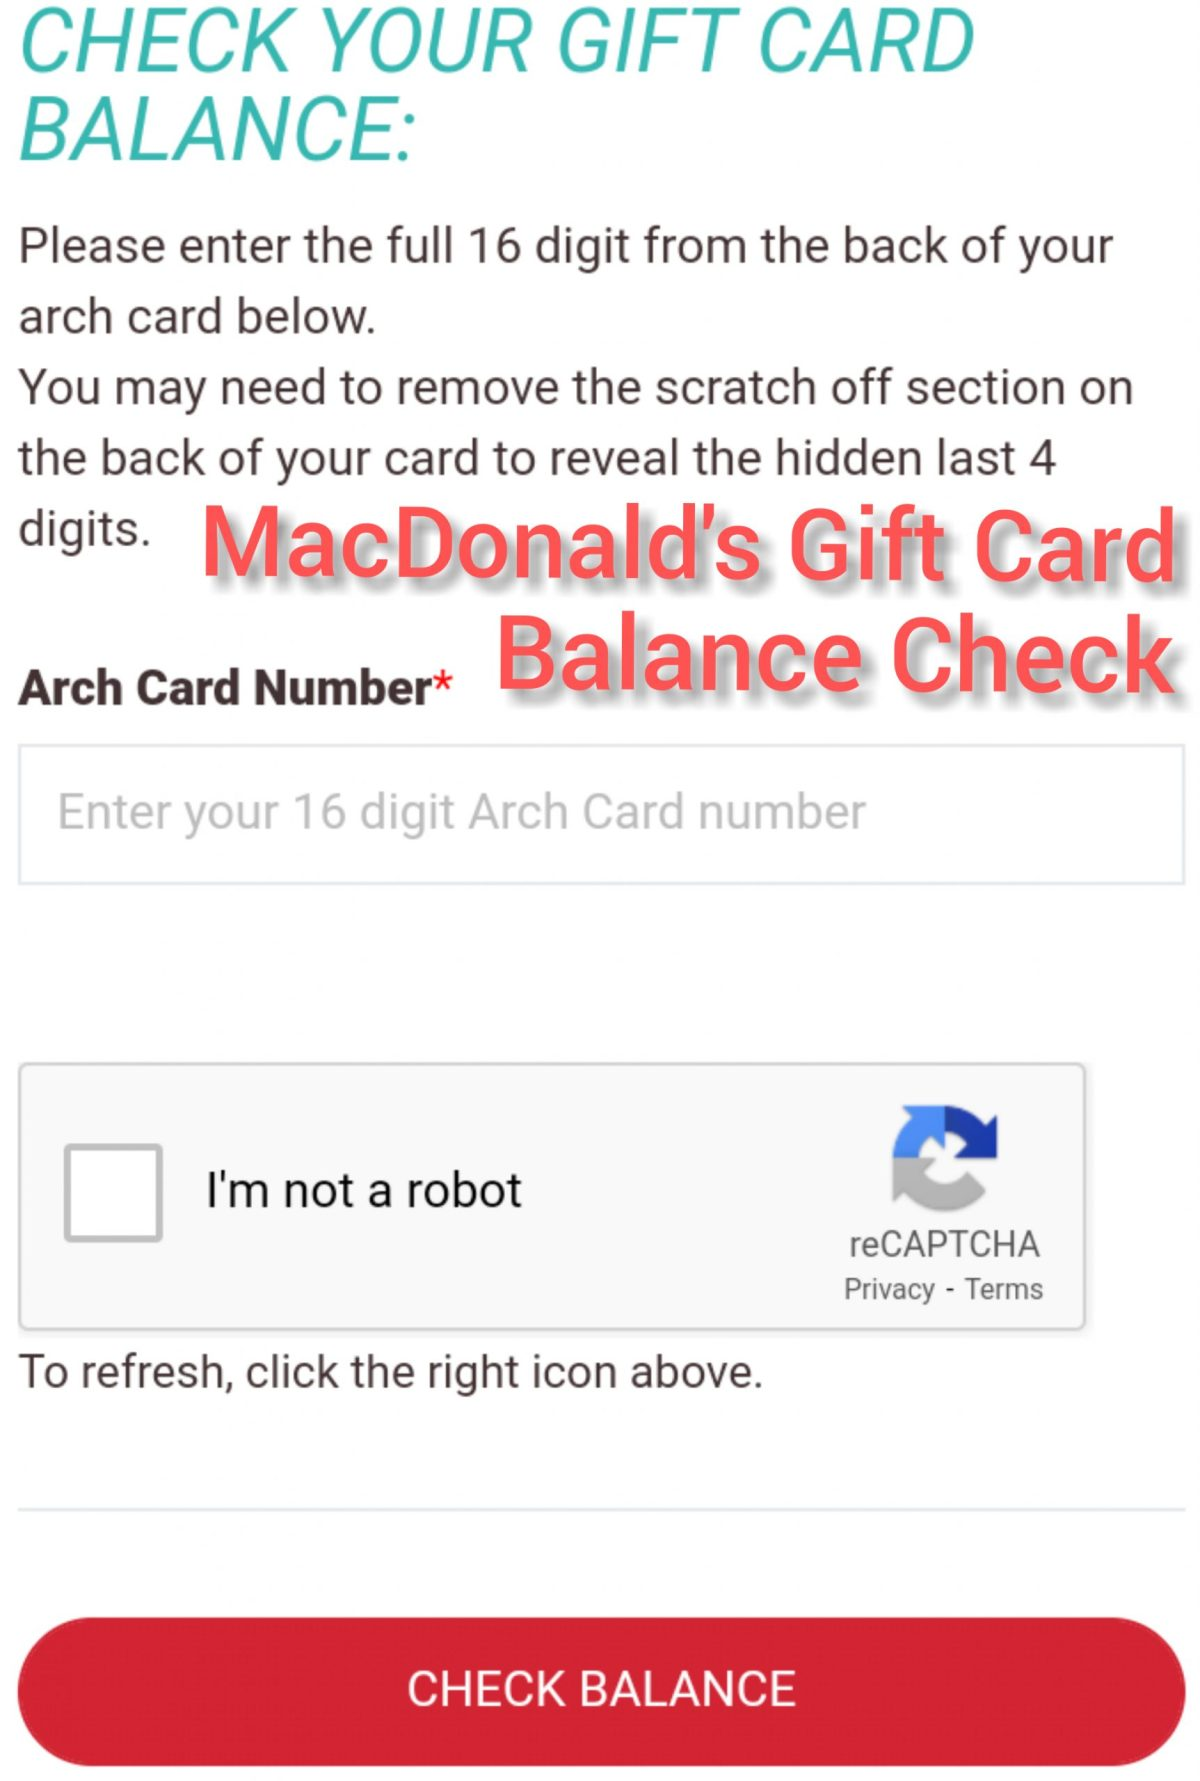 Mcdonalds Gift Card Balance Check - How To Find Mcdonalds Gift Card Balance